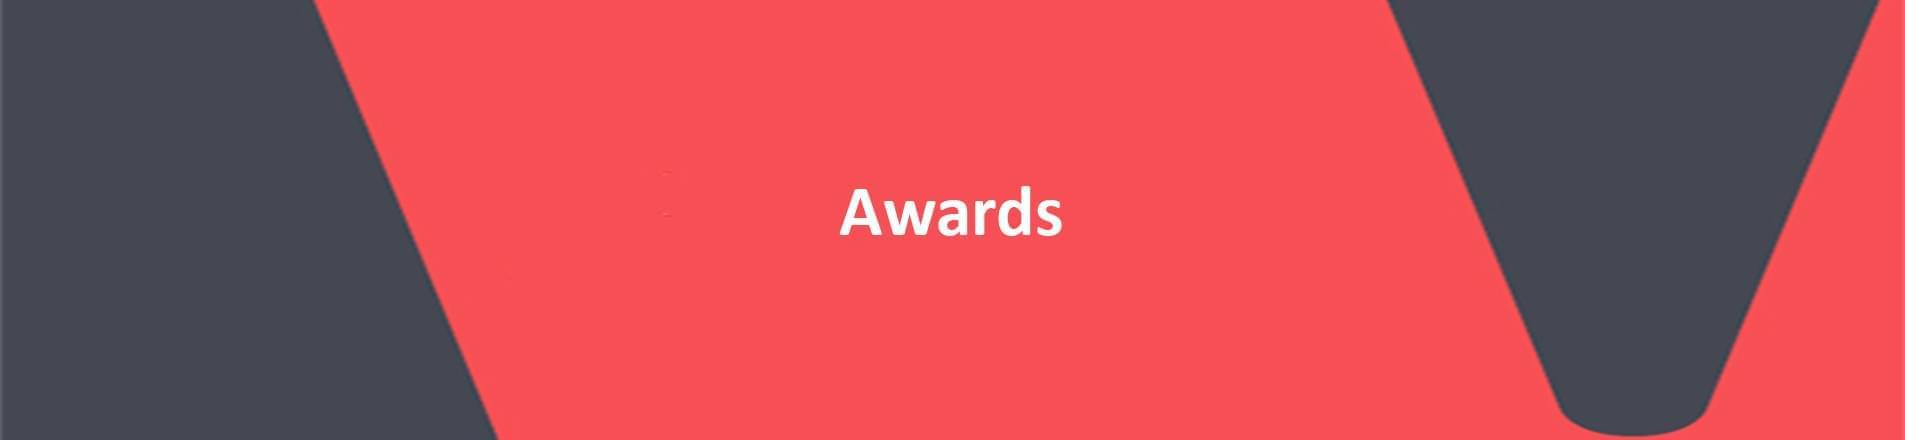 The word Awards on a red VERCIDA branded background